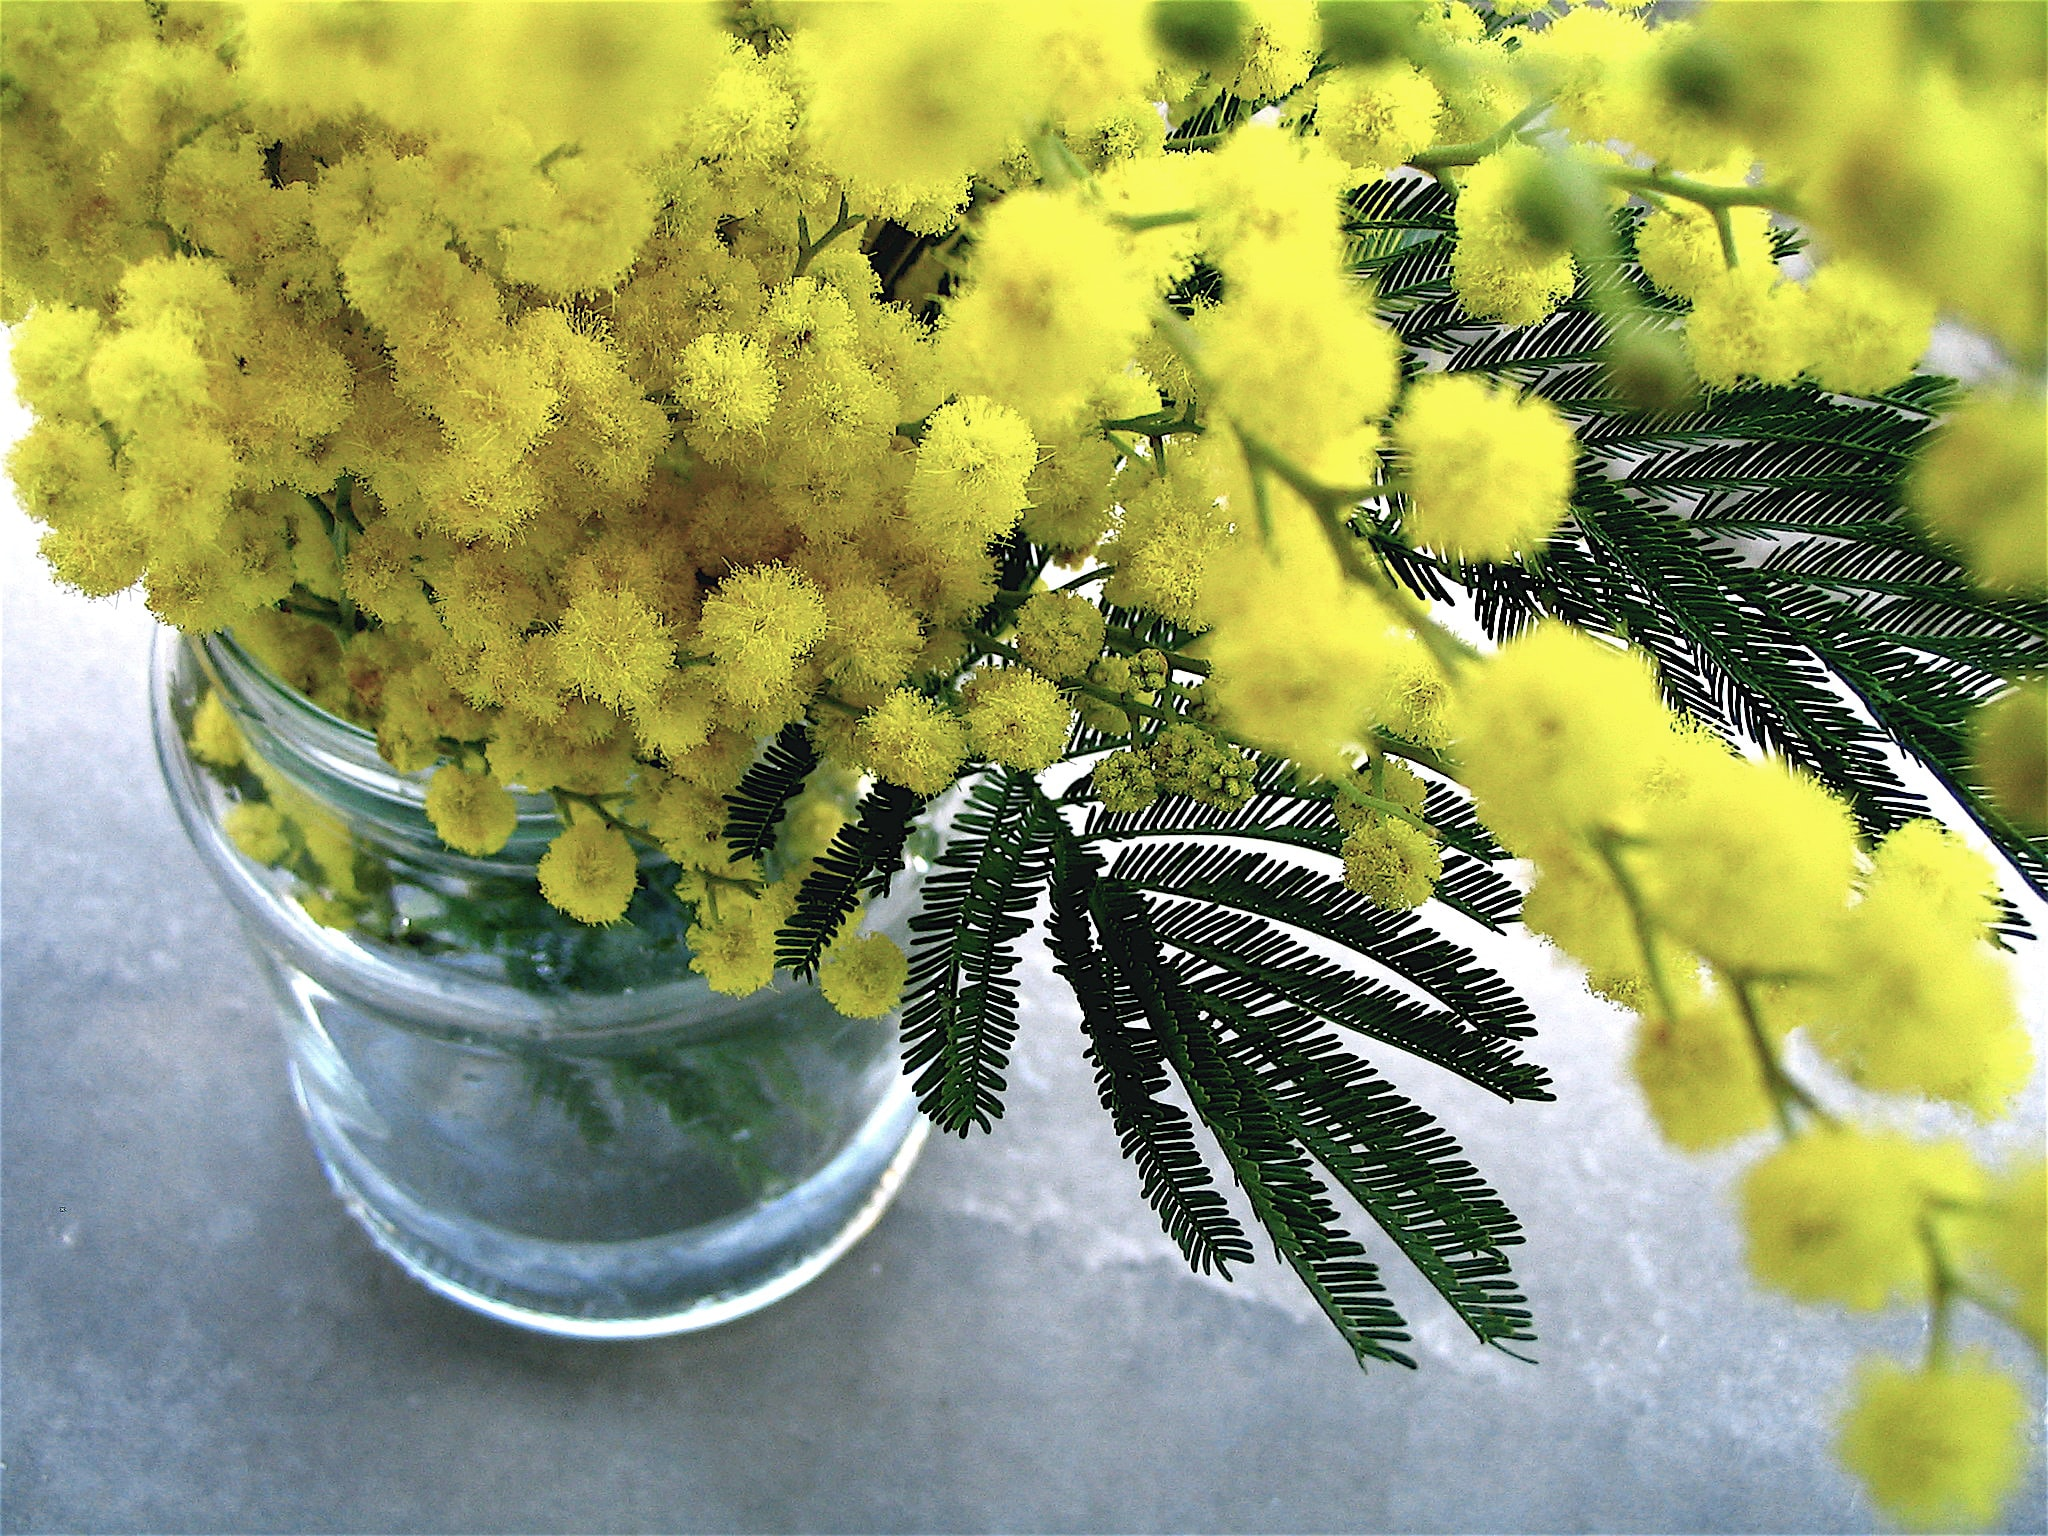 yellow flower arrangement on gray surface